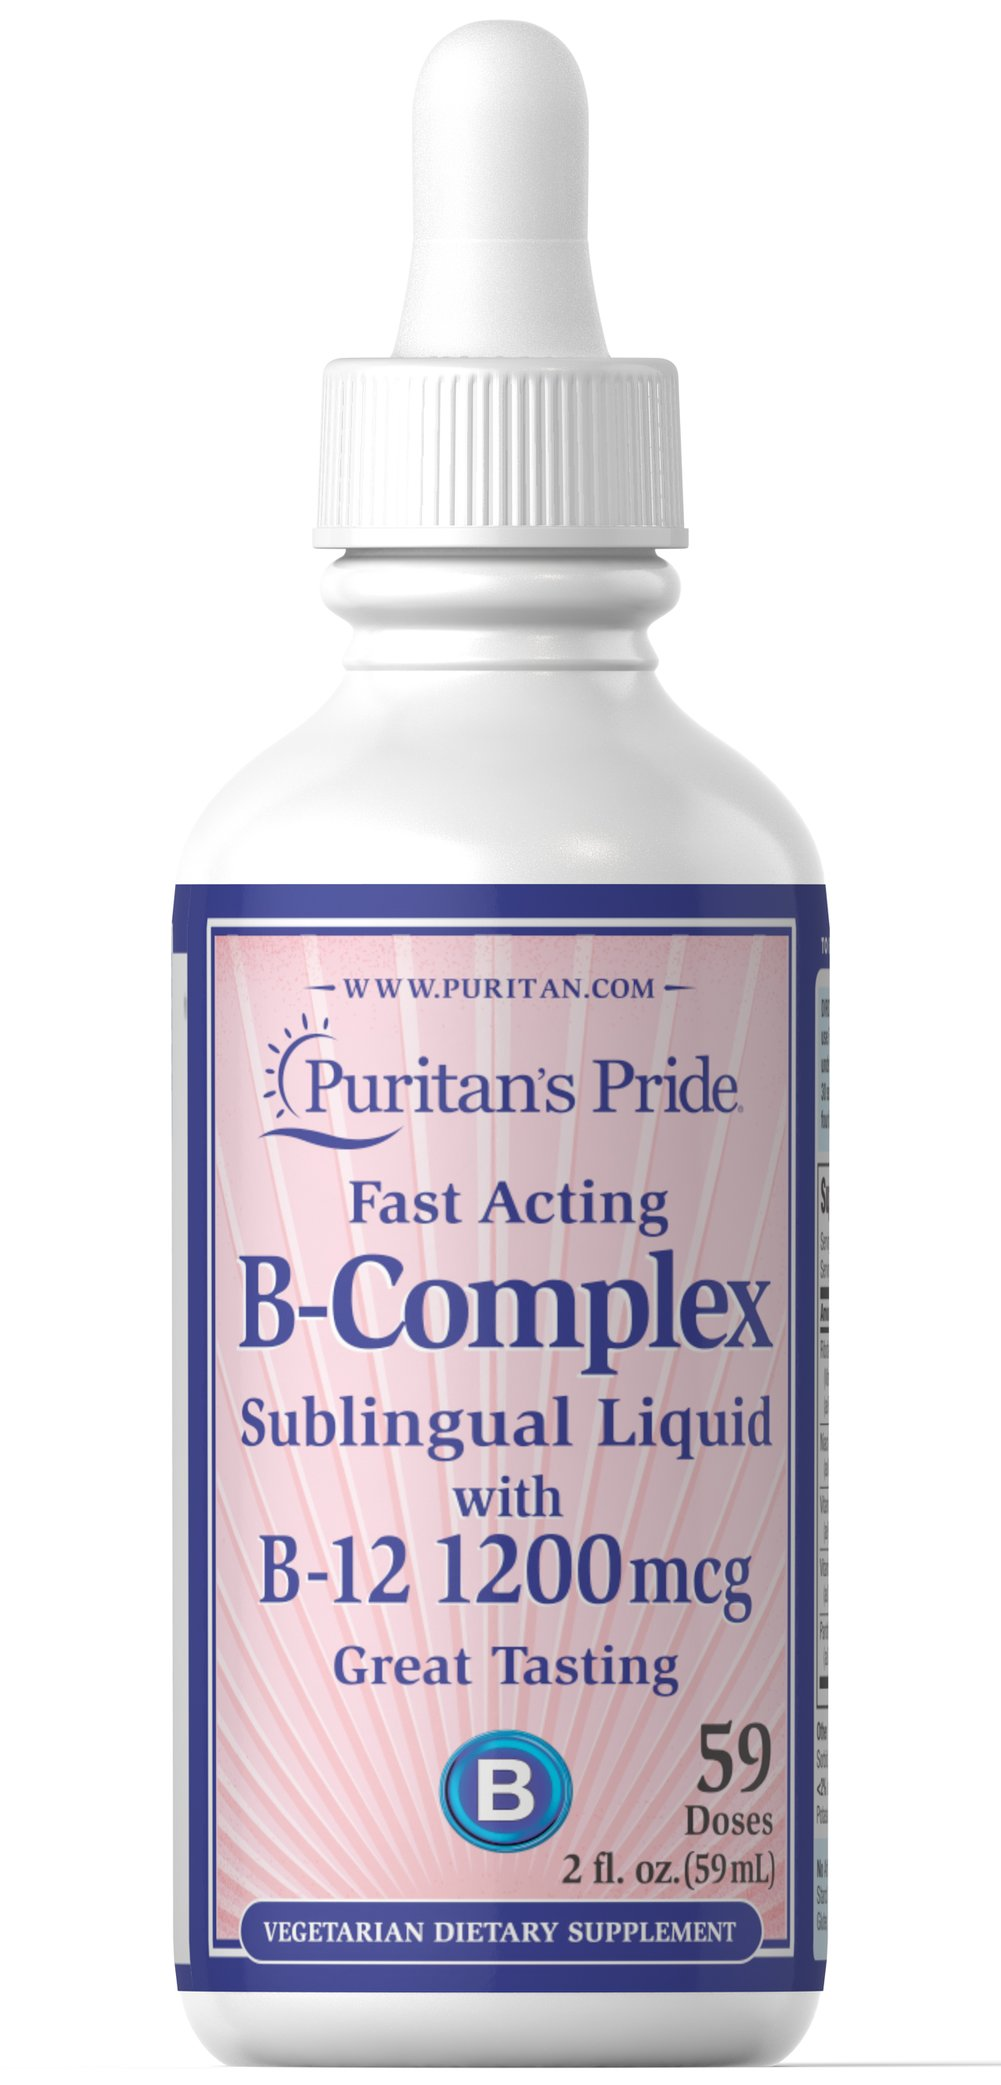 Vitamin B-Complex Sublingual Liquid with Vitamin B-12 <p>This Vitamin B-Complex Sublingual Liquid with Vitamin B-12 provides an excellent source of B-Complex vitamins to help safeguard a sufficient daily intake. The B-Complex is essential for the maintenance of healthy nervous tissue.** The B Vitamins play a role in energy metabolism in the body.** There are 59 doses per 2 fl. oz.</p> 2 fl oz Liquid  $11.99